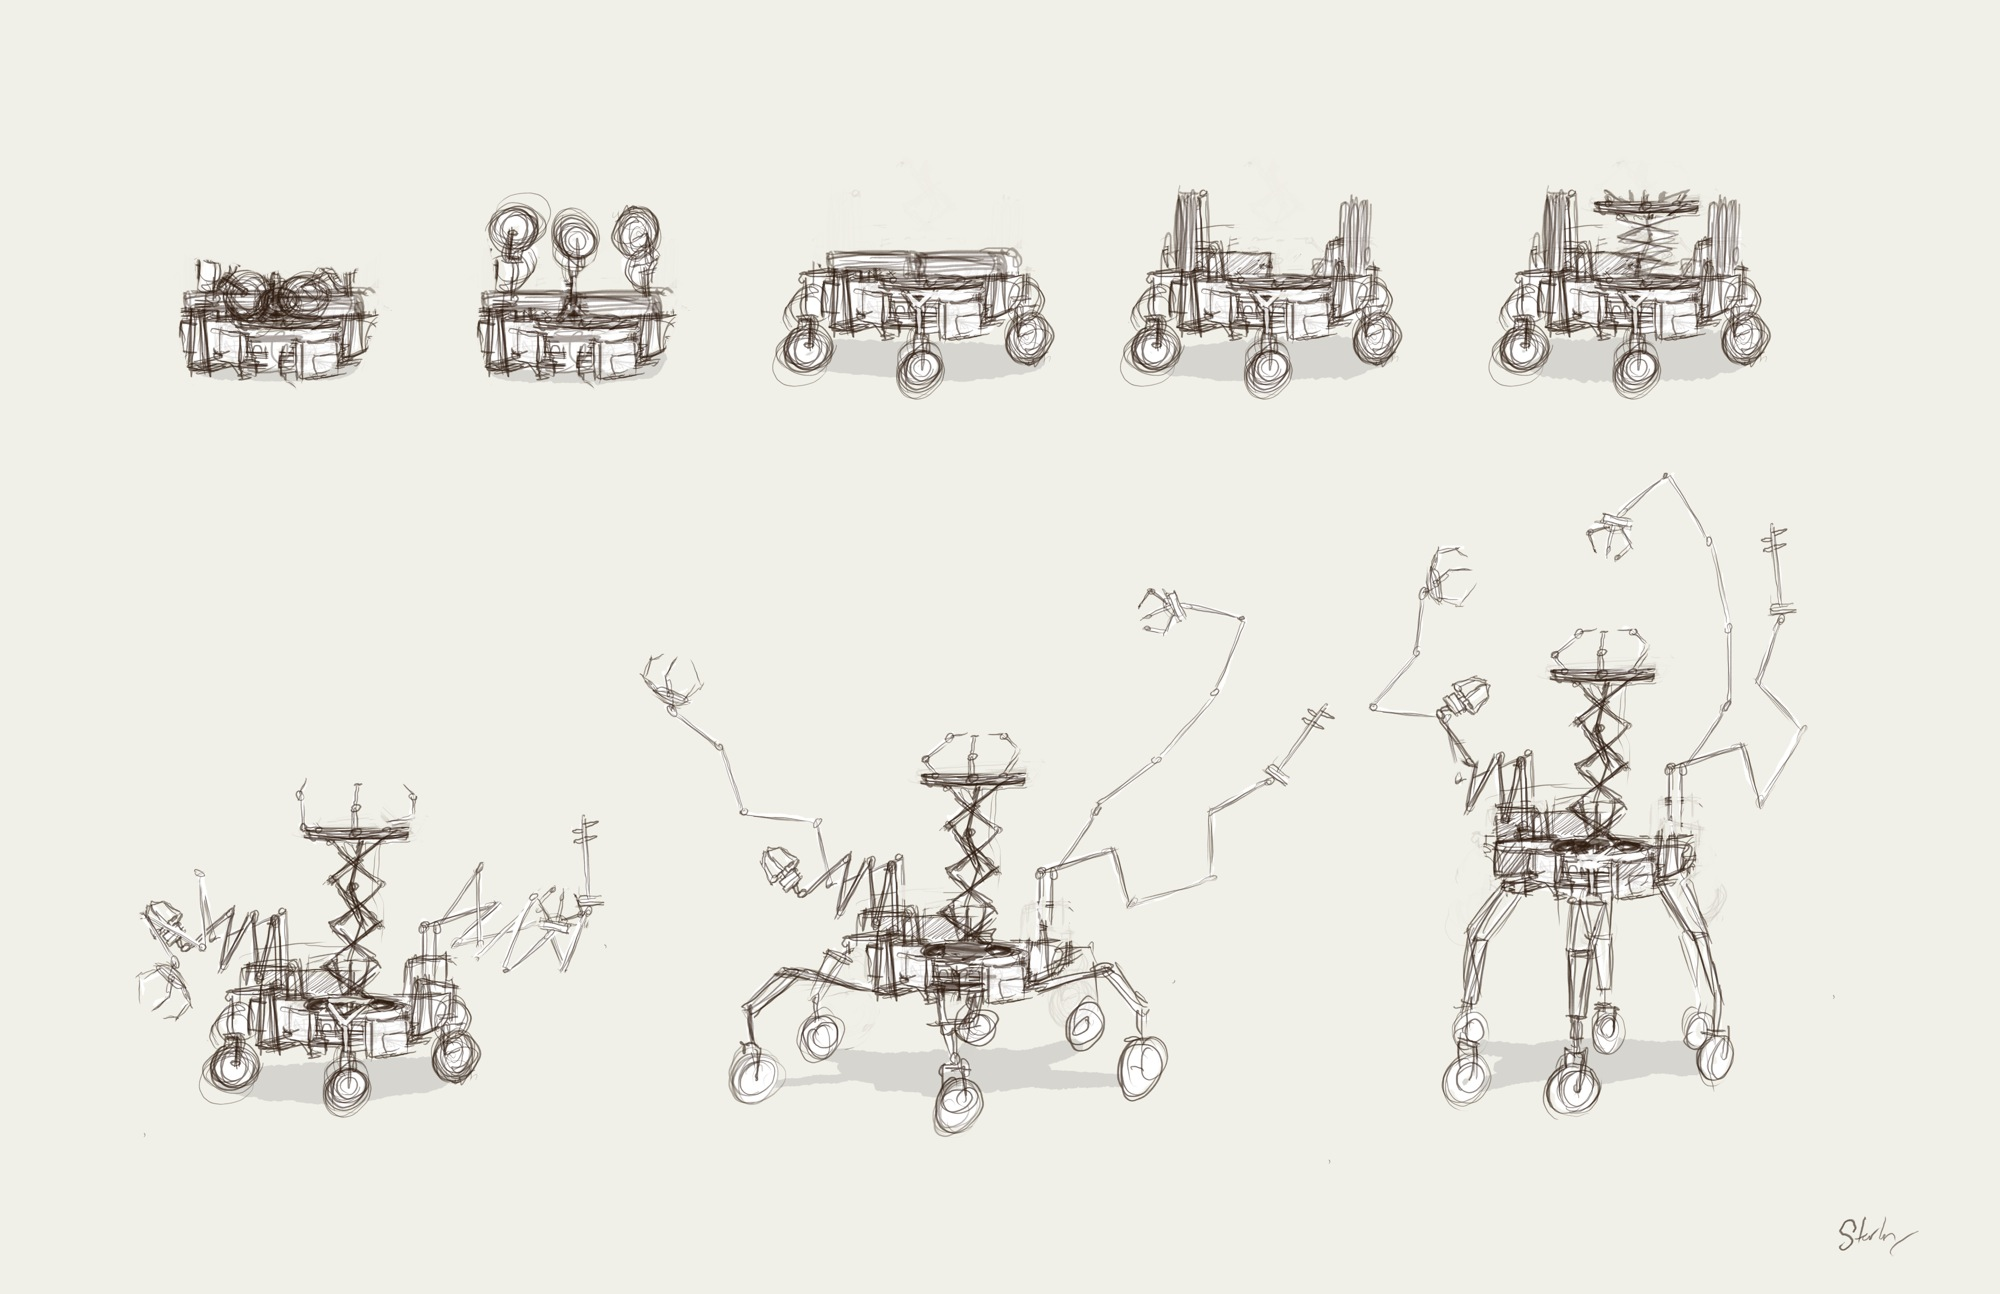 The rover unfolding sequence.